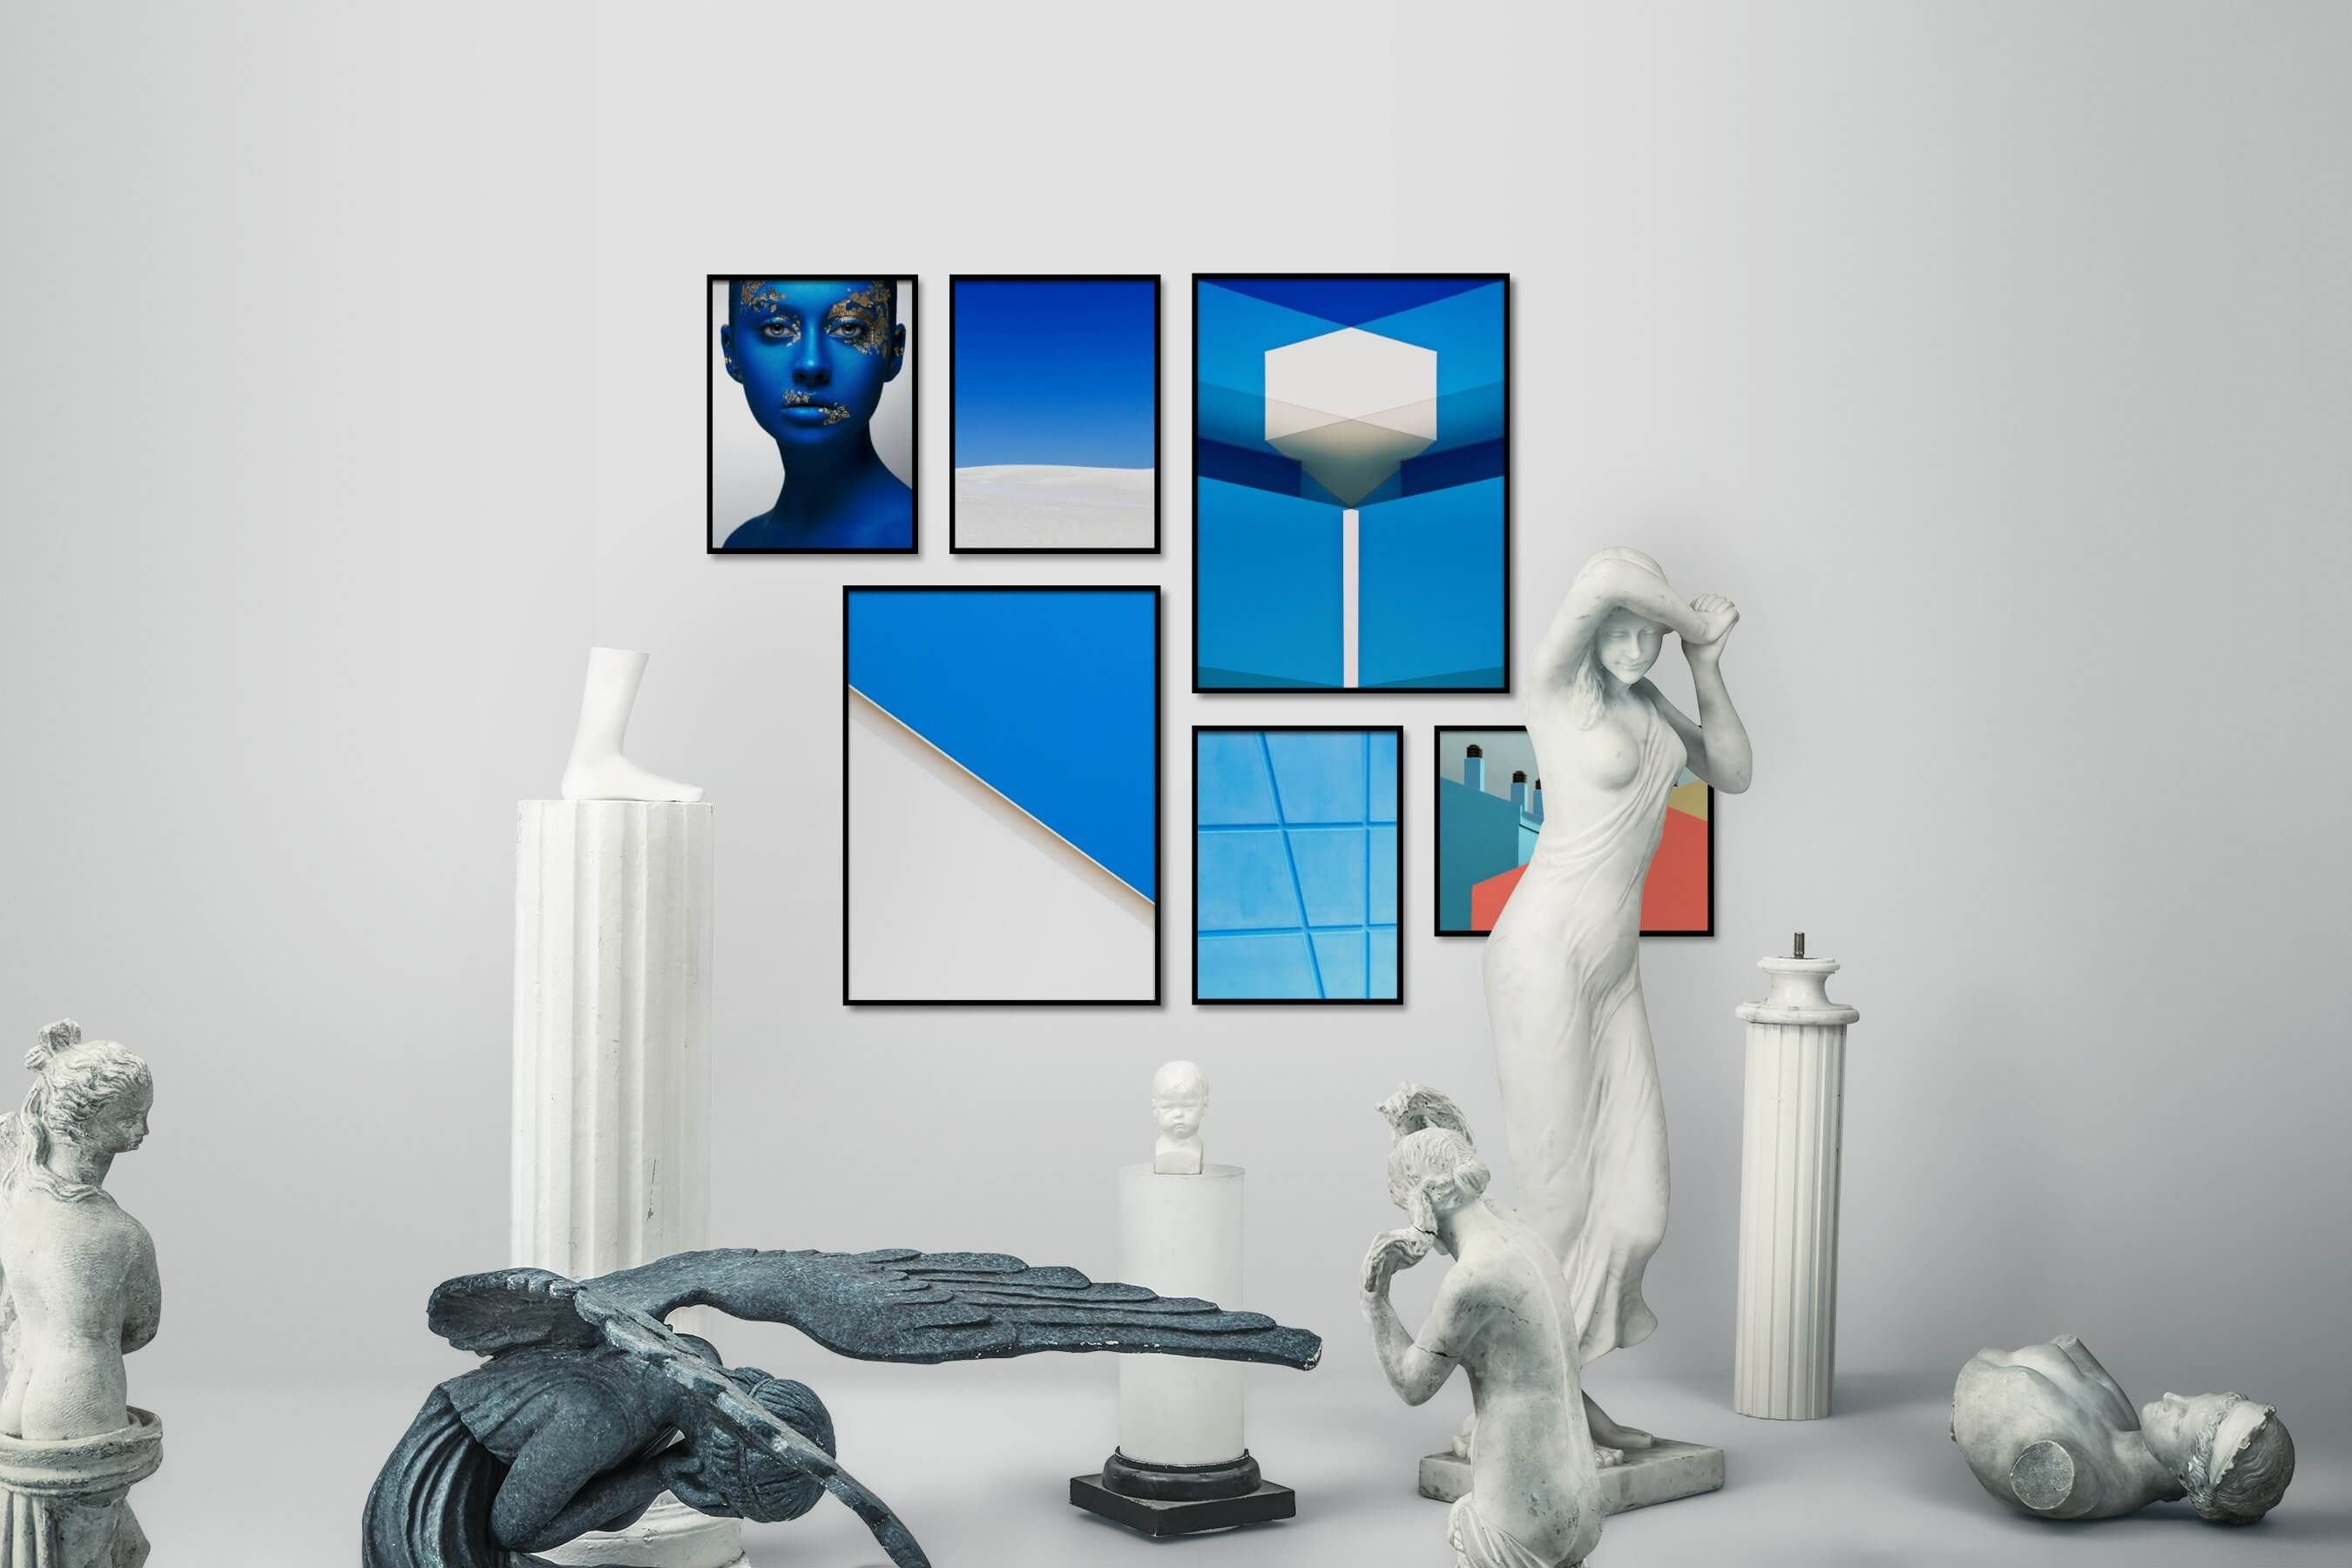 Gallery wall idea with six framed pictures arranged on a wall depicting Fashion & Beauty, Colorful, For the Minimalist, Nature, For the Moderate, and City Life